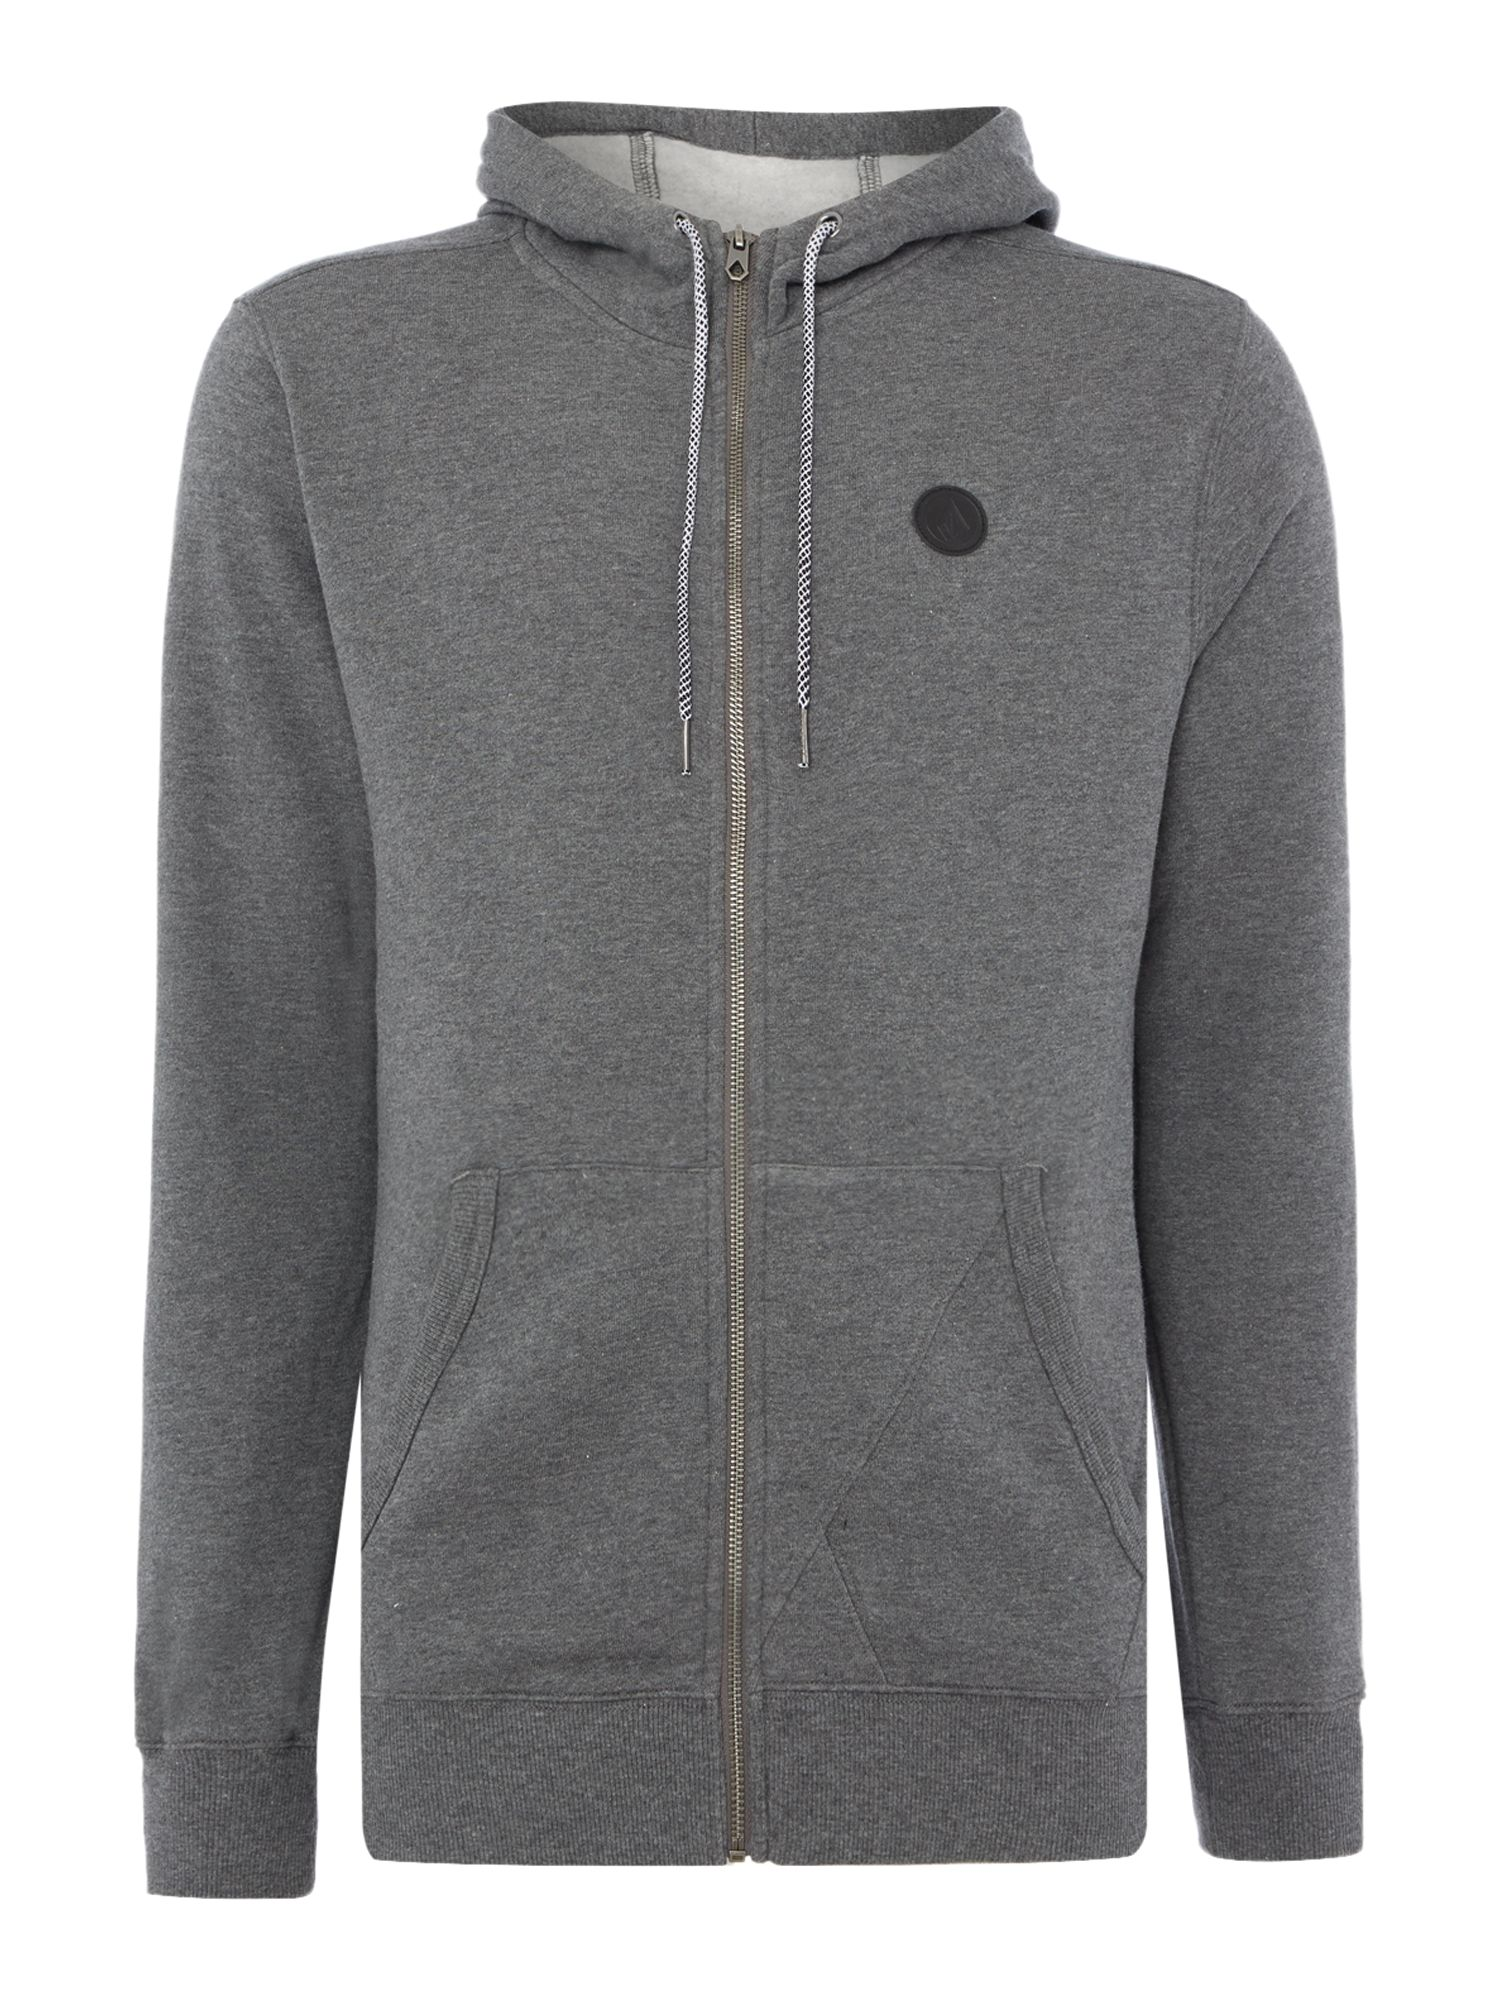 Men's Volcom Fleece fabric Zip-Up Hoodie, Dark Grey